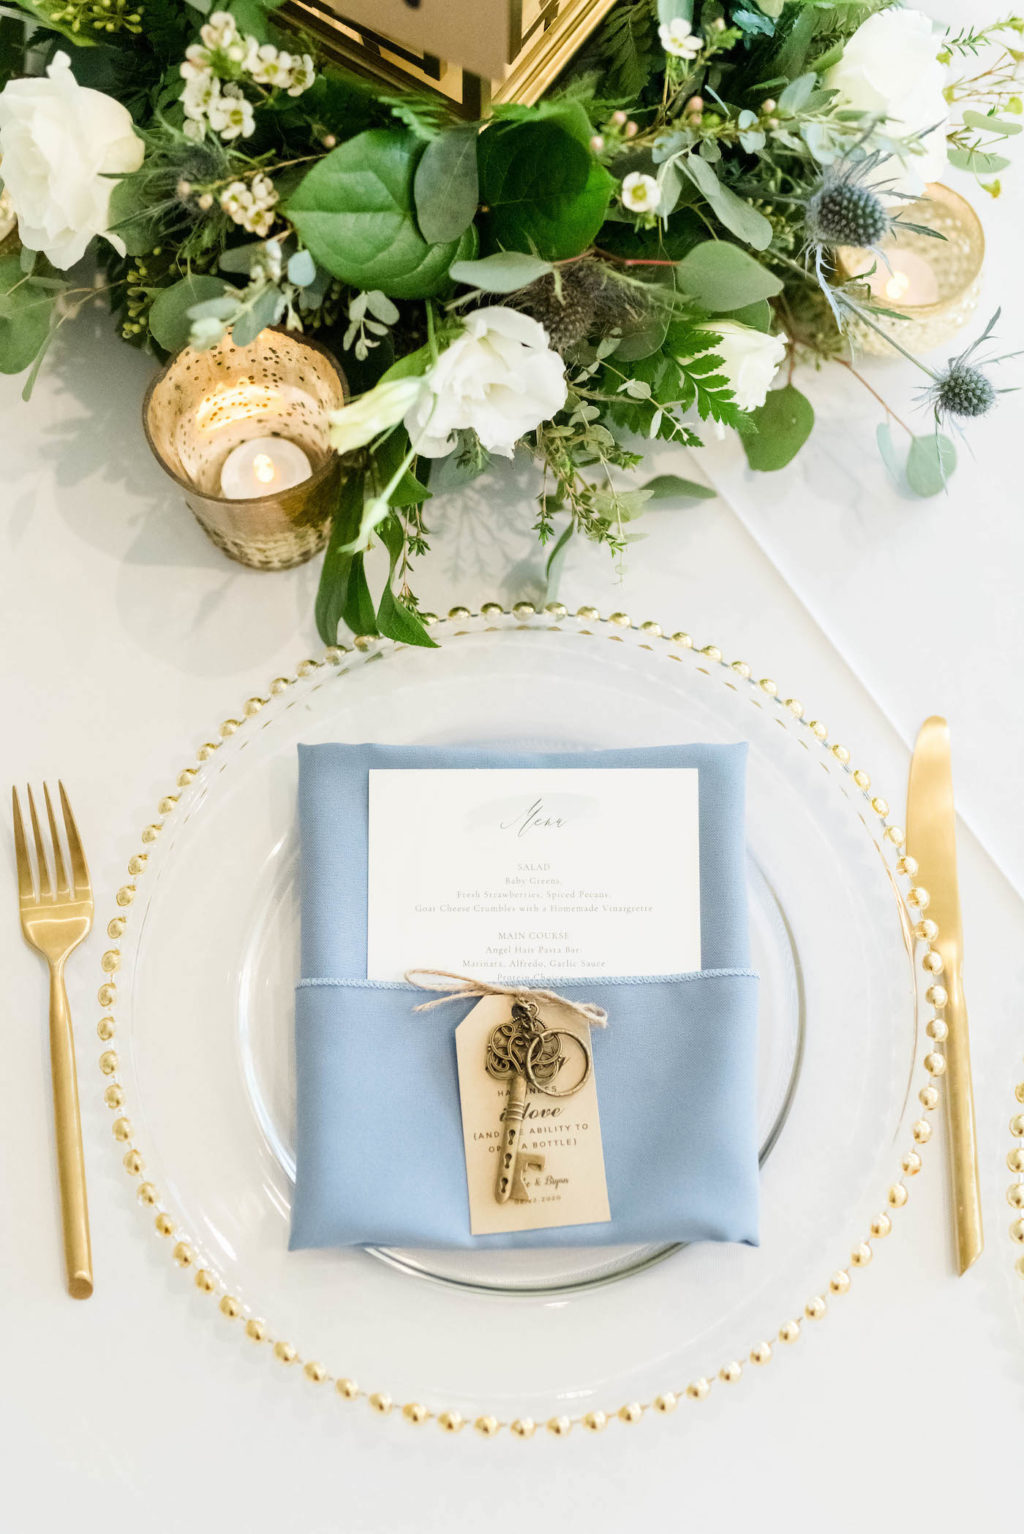 Wedding Place Setting with Gold Flatware and Gold Beaded Edge Glass Charger Plate and Dusty Blue Napkin with Menu and Brass Key Favor | Gabro Event Services | Lynn's Catering of Tampa